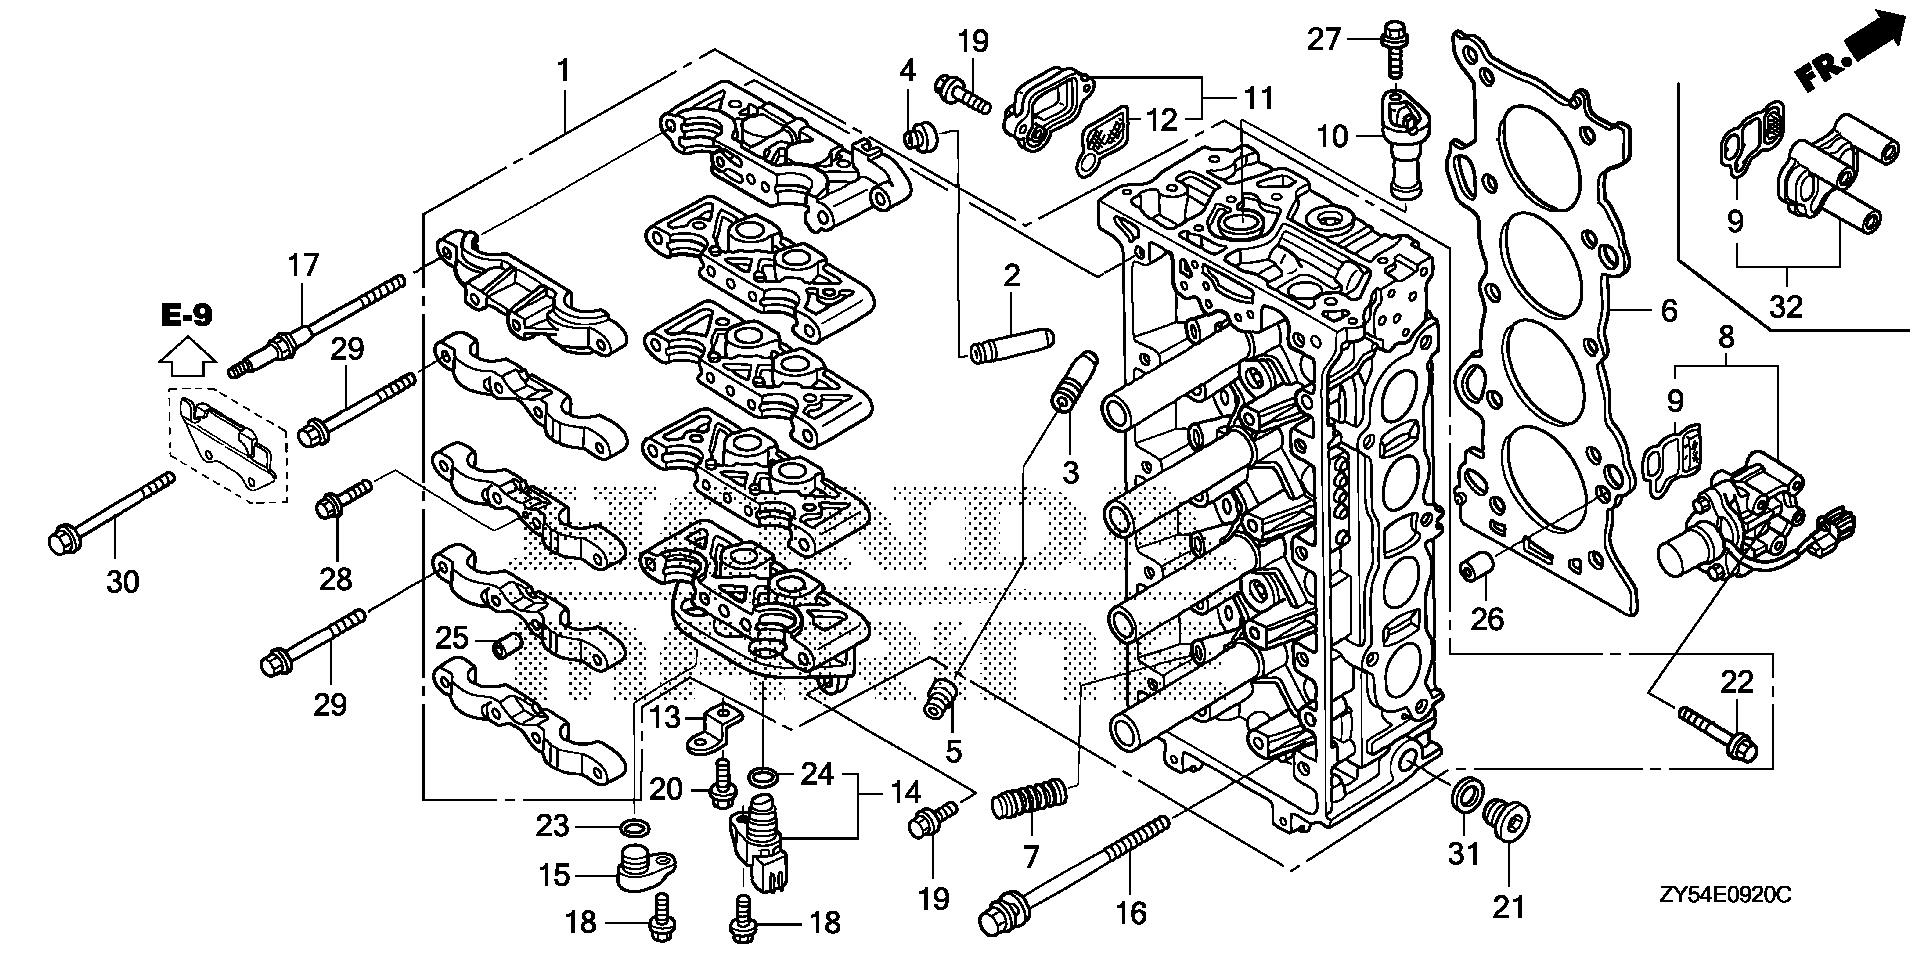 Honda Bf150 Outboard Wiring Diagram Dimensions Recon 90 Hp Yamaha On Marine Parts Look Up Official Site